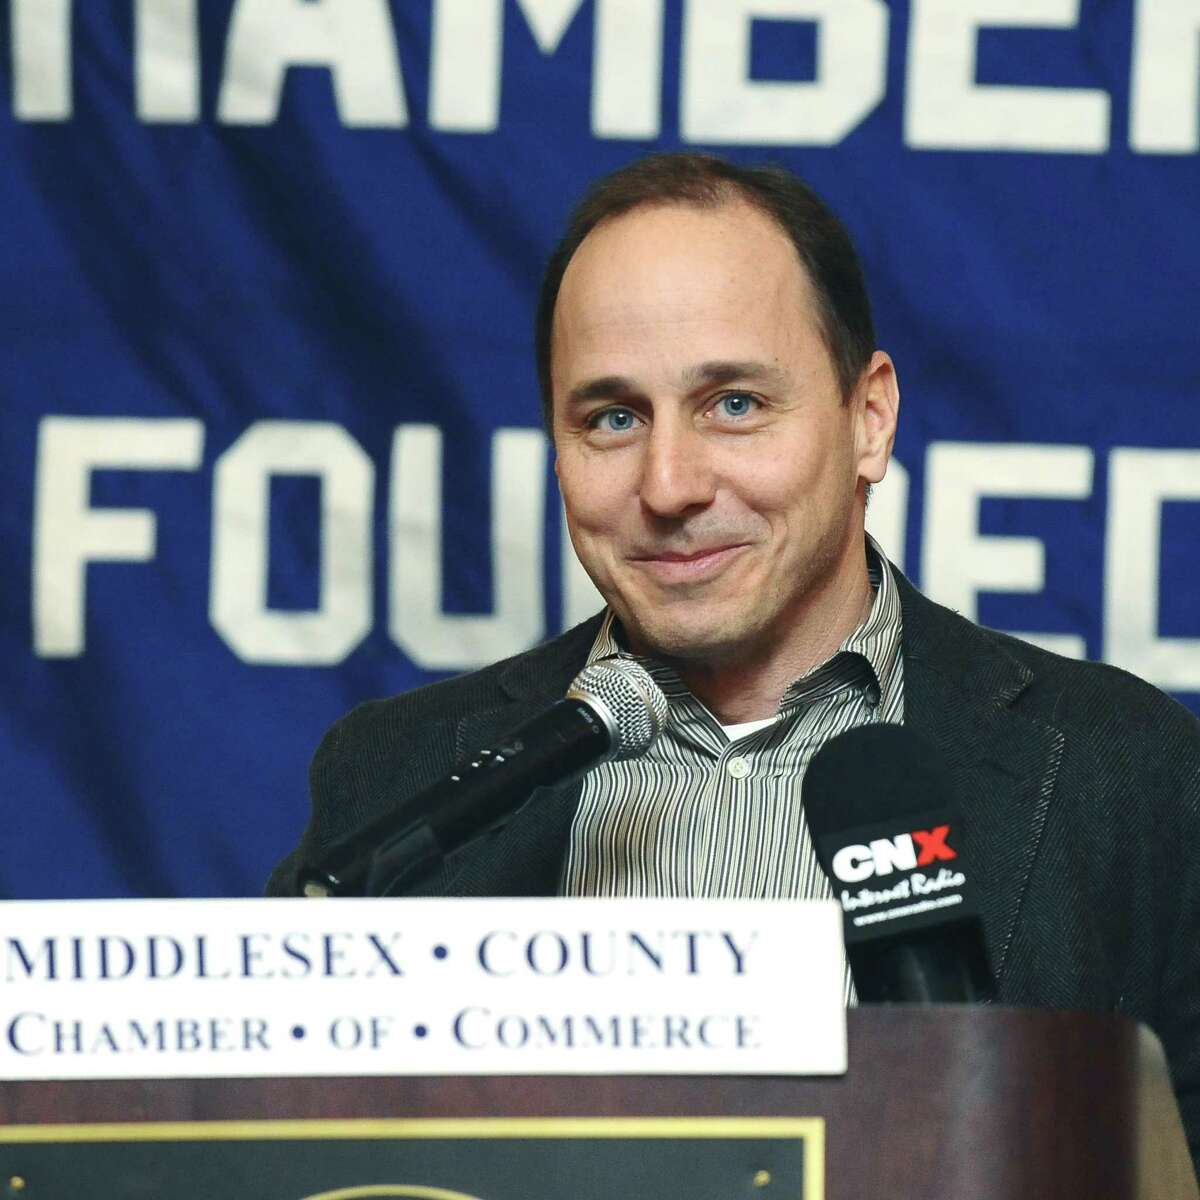 New York Yankees General Manager Brian Cashman addresses the Middlesex Chamber of Commerce monthly breakfast. He will participate in a candid discussion over breakfast at a Darien home on Feb. 8 to benefit Greenwich-based Family Centers.